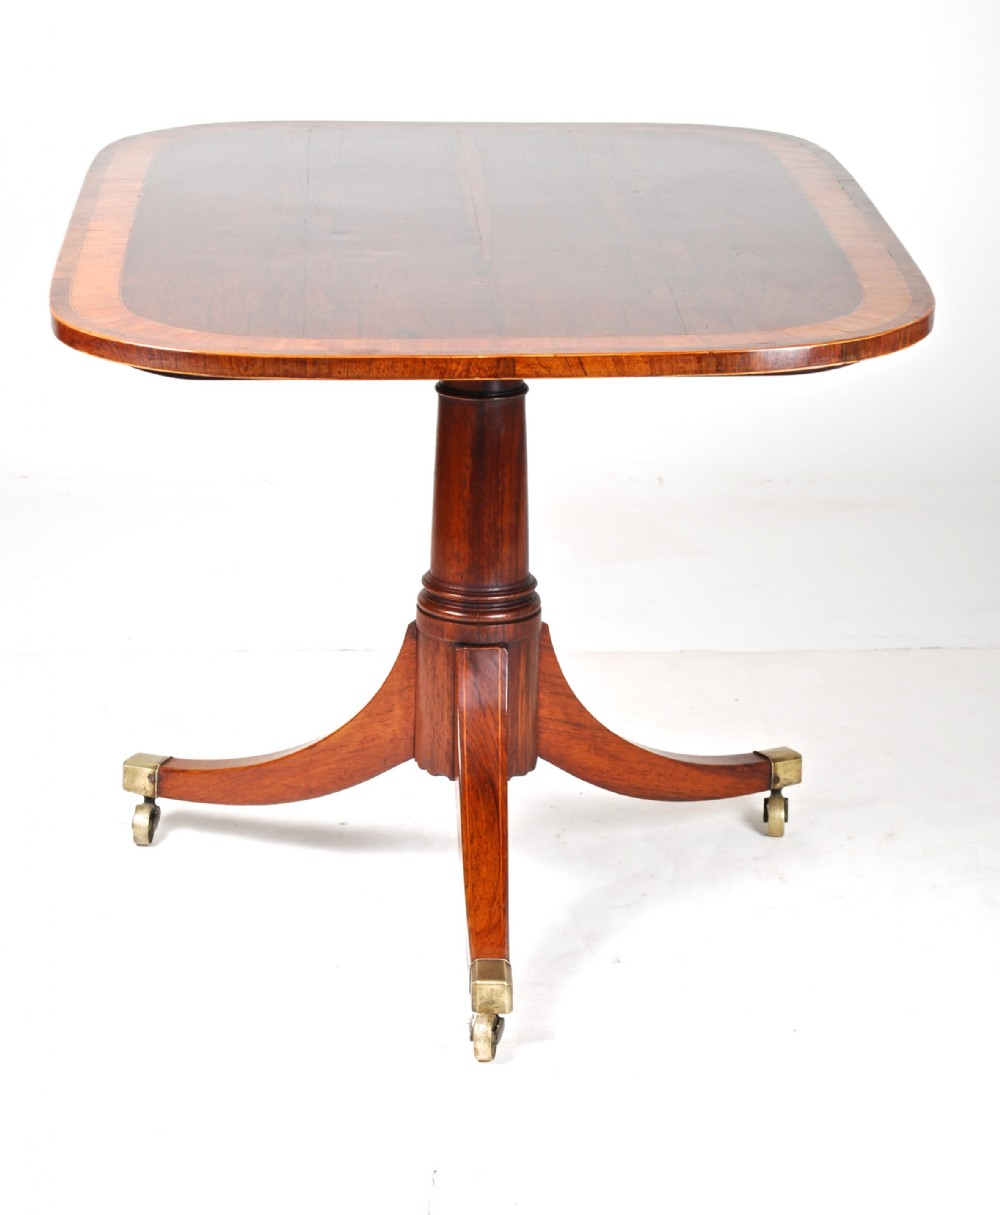 george iii centre table c1800